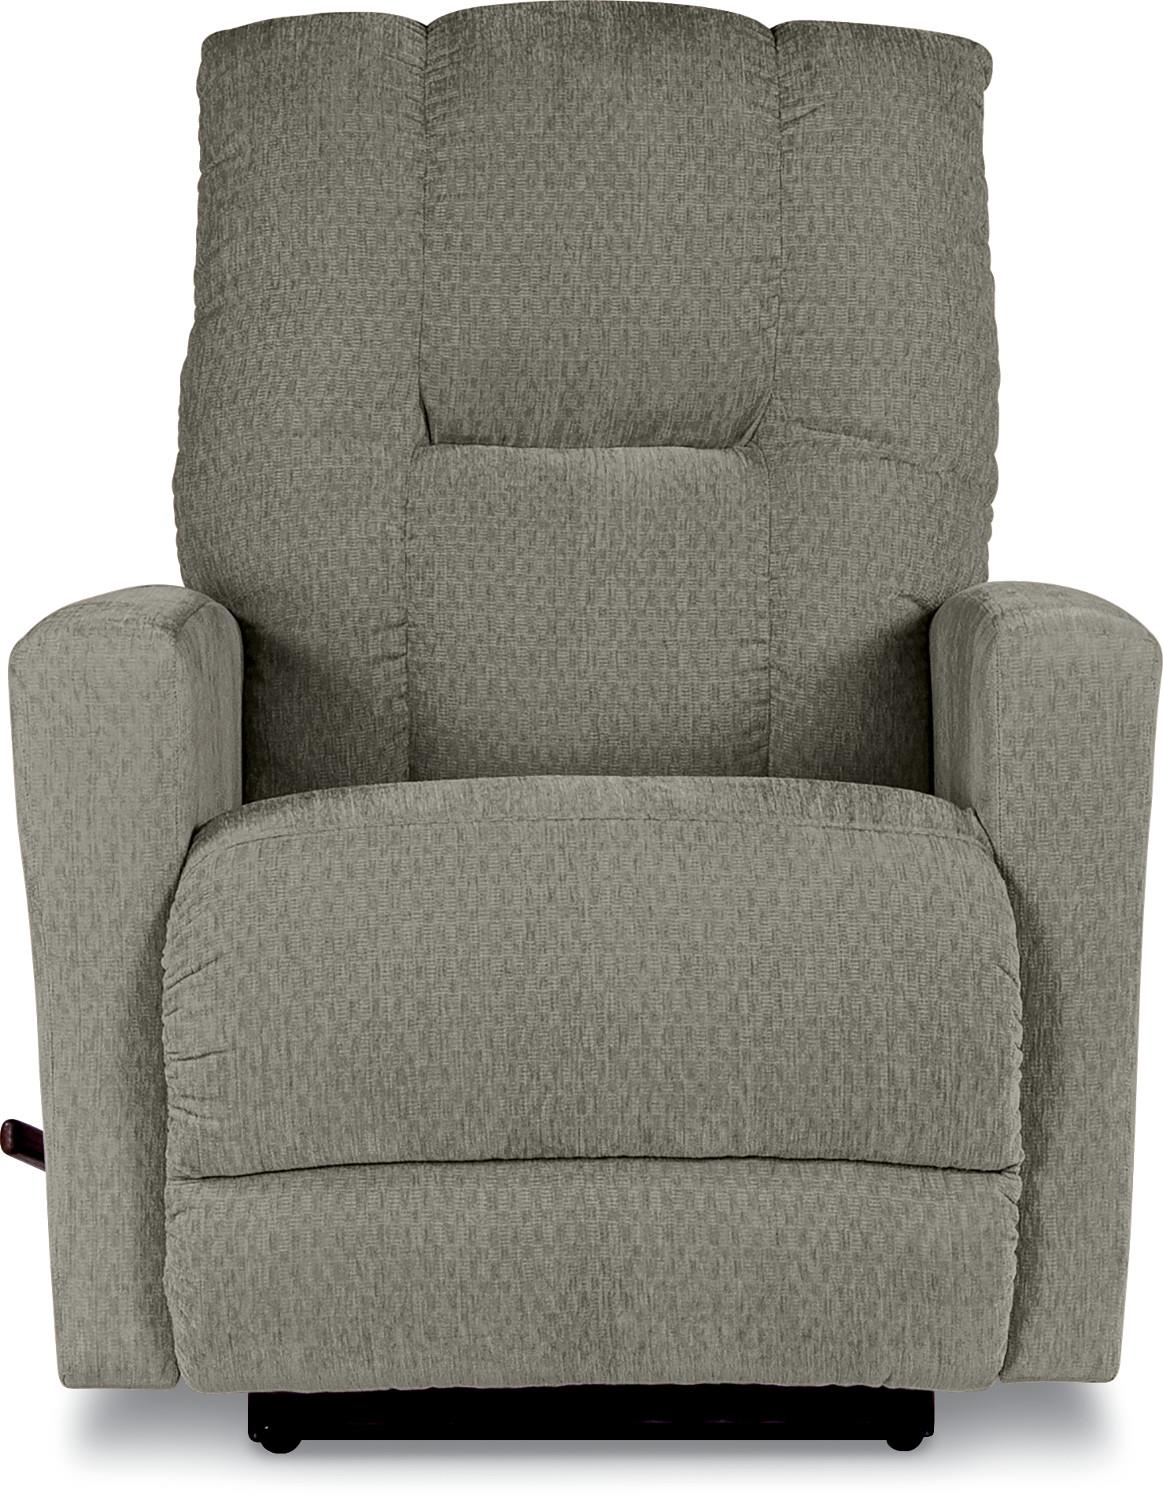 Recliners Casey Wall Recliner by La-Z-Boy at Johnny Janosik